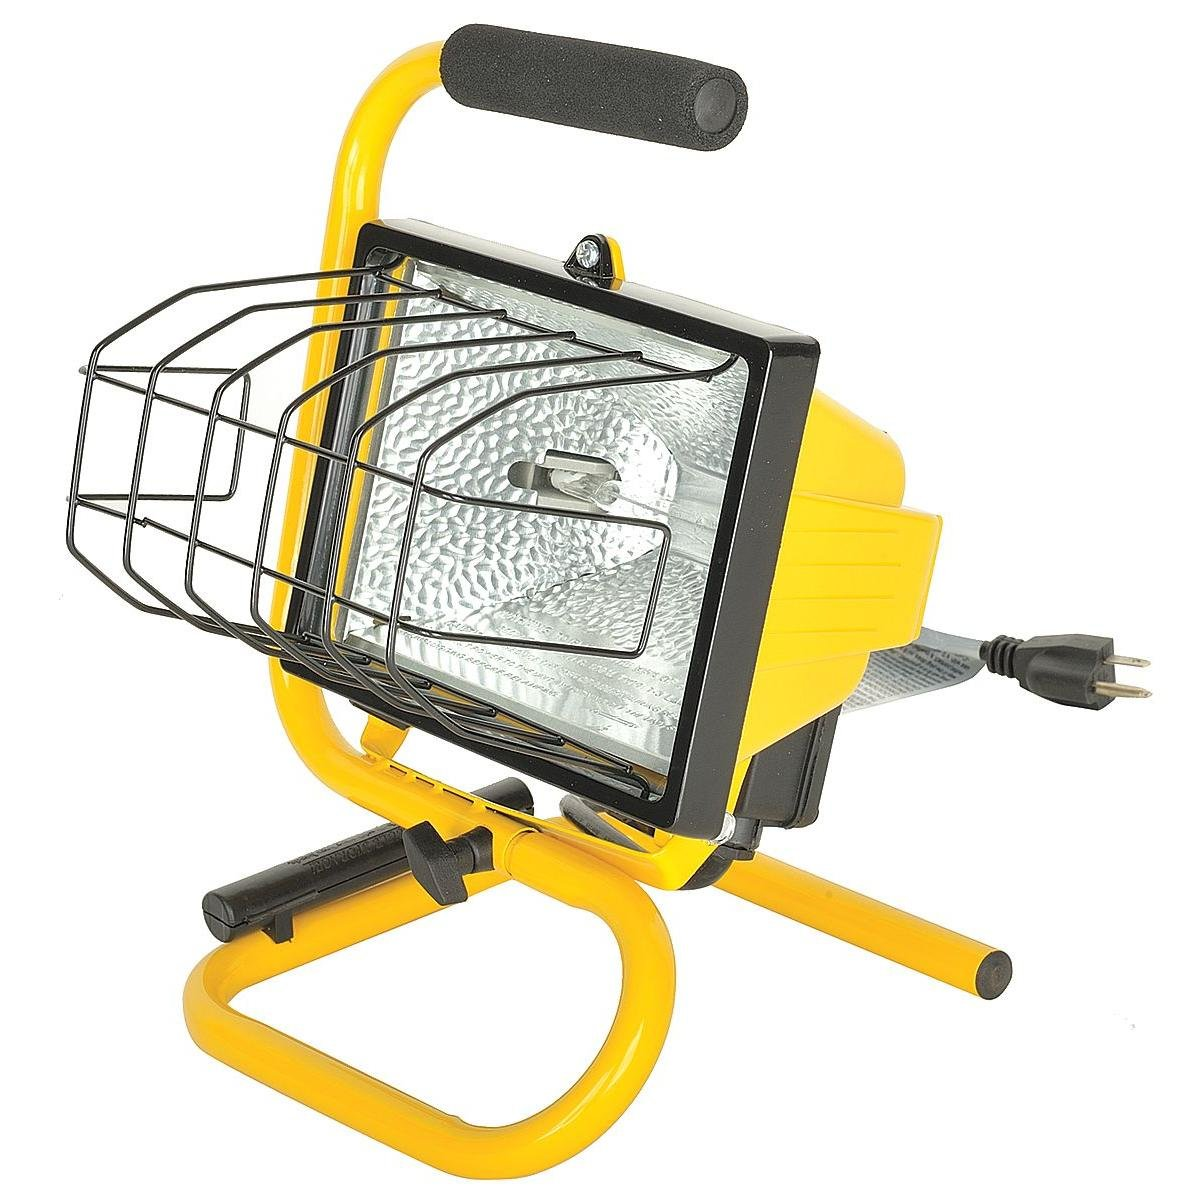 Rocky Mountain Goods Halogen Worklight with Stand / handle - 500-Watt Portable handheld shop light - Adjustable lighting angle - Grip handle - Lens guard - Industrial aluminum housing - 5' power cord